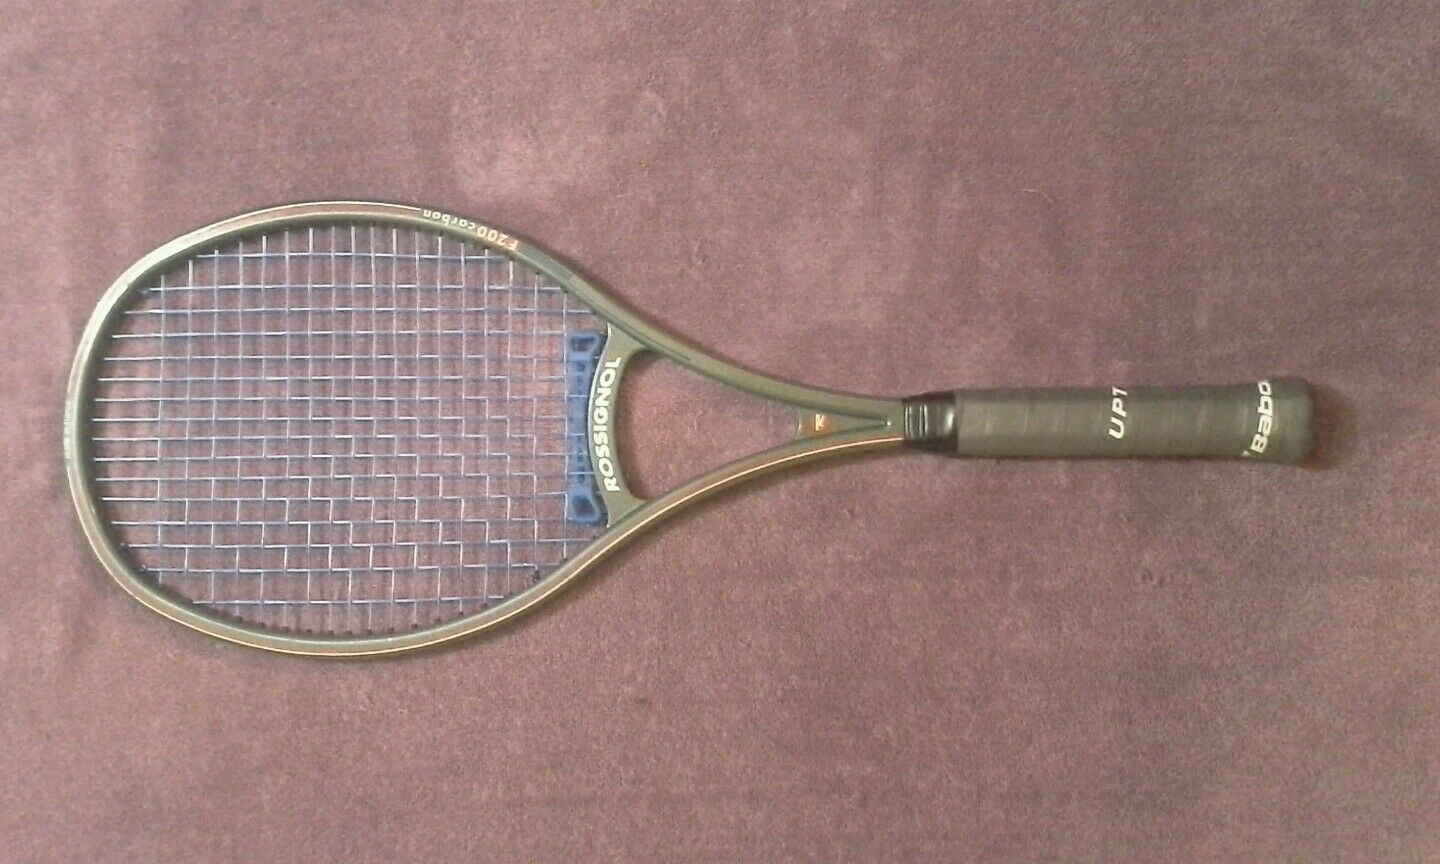 A Rossignol F 200 Midsize in Nice Condition